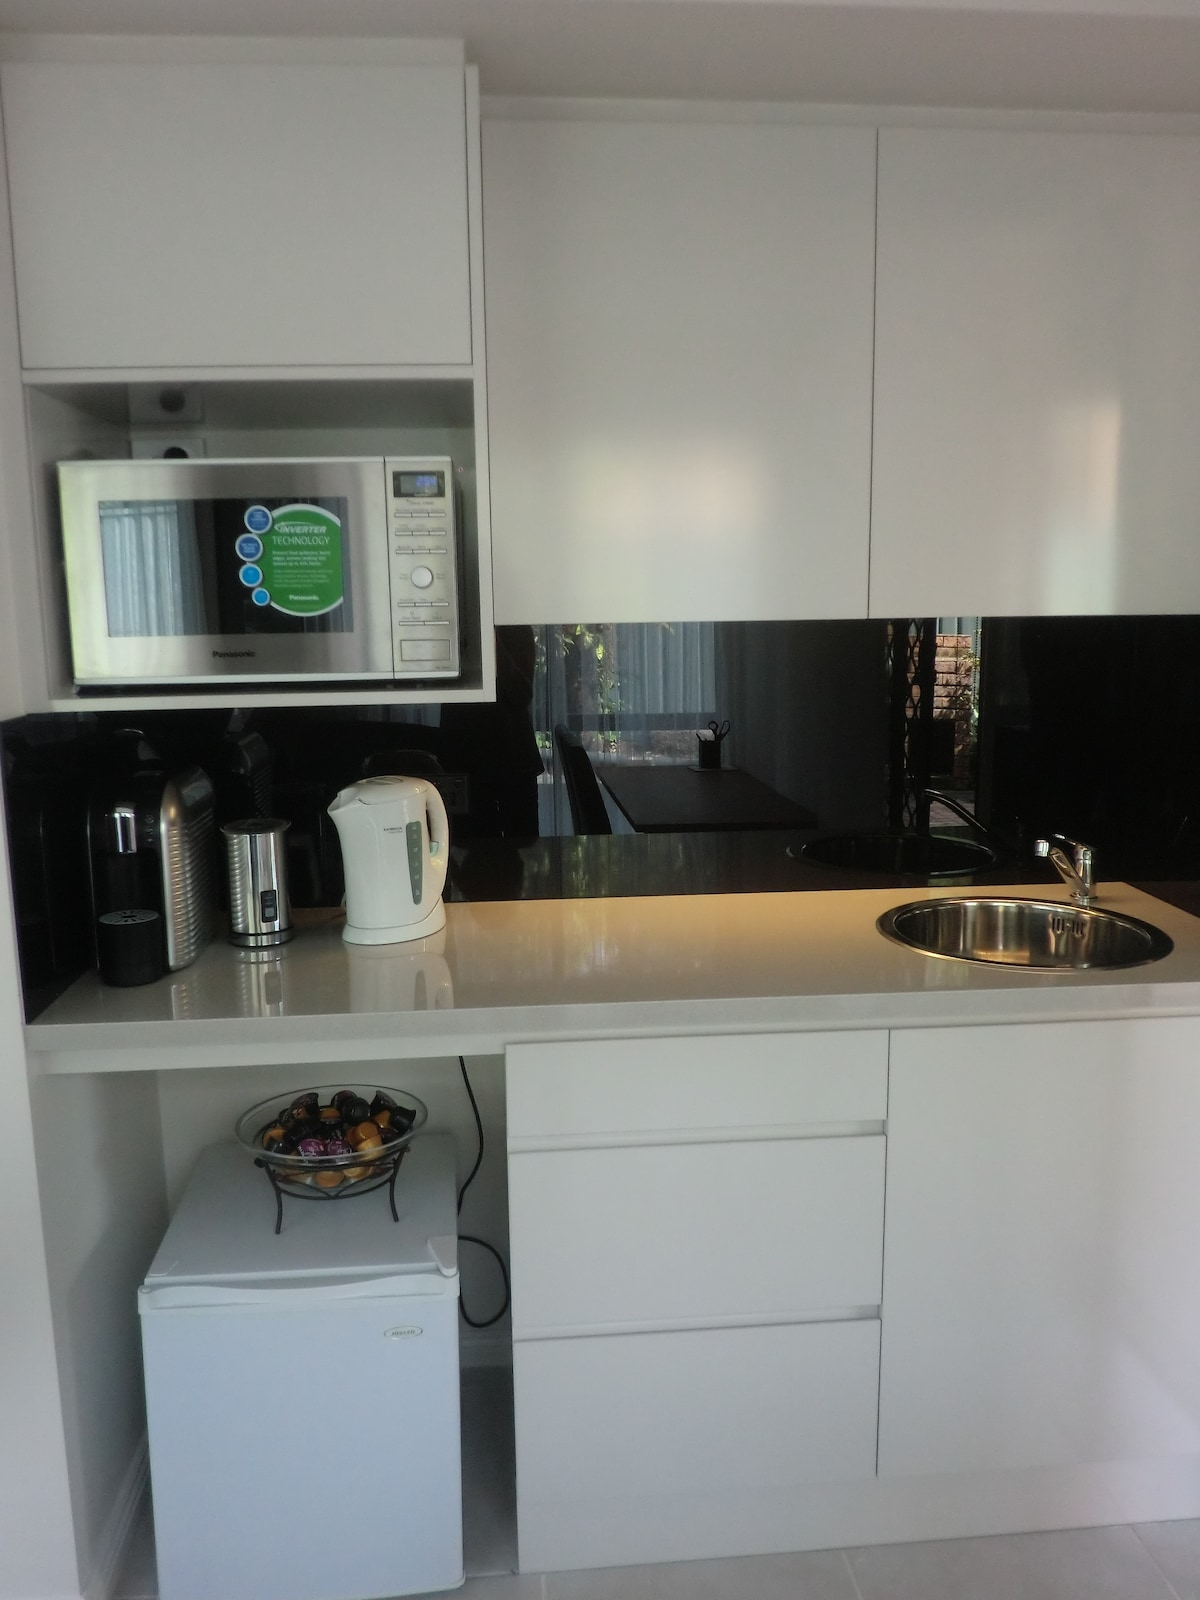 The guest area has new kitchenette, with sink, microwave, fridge,coffee machine, kettle, toaster, and everything you need to self-cater if you wish to do so.